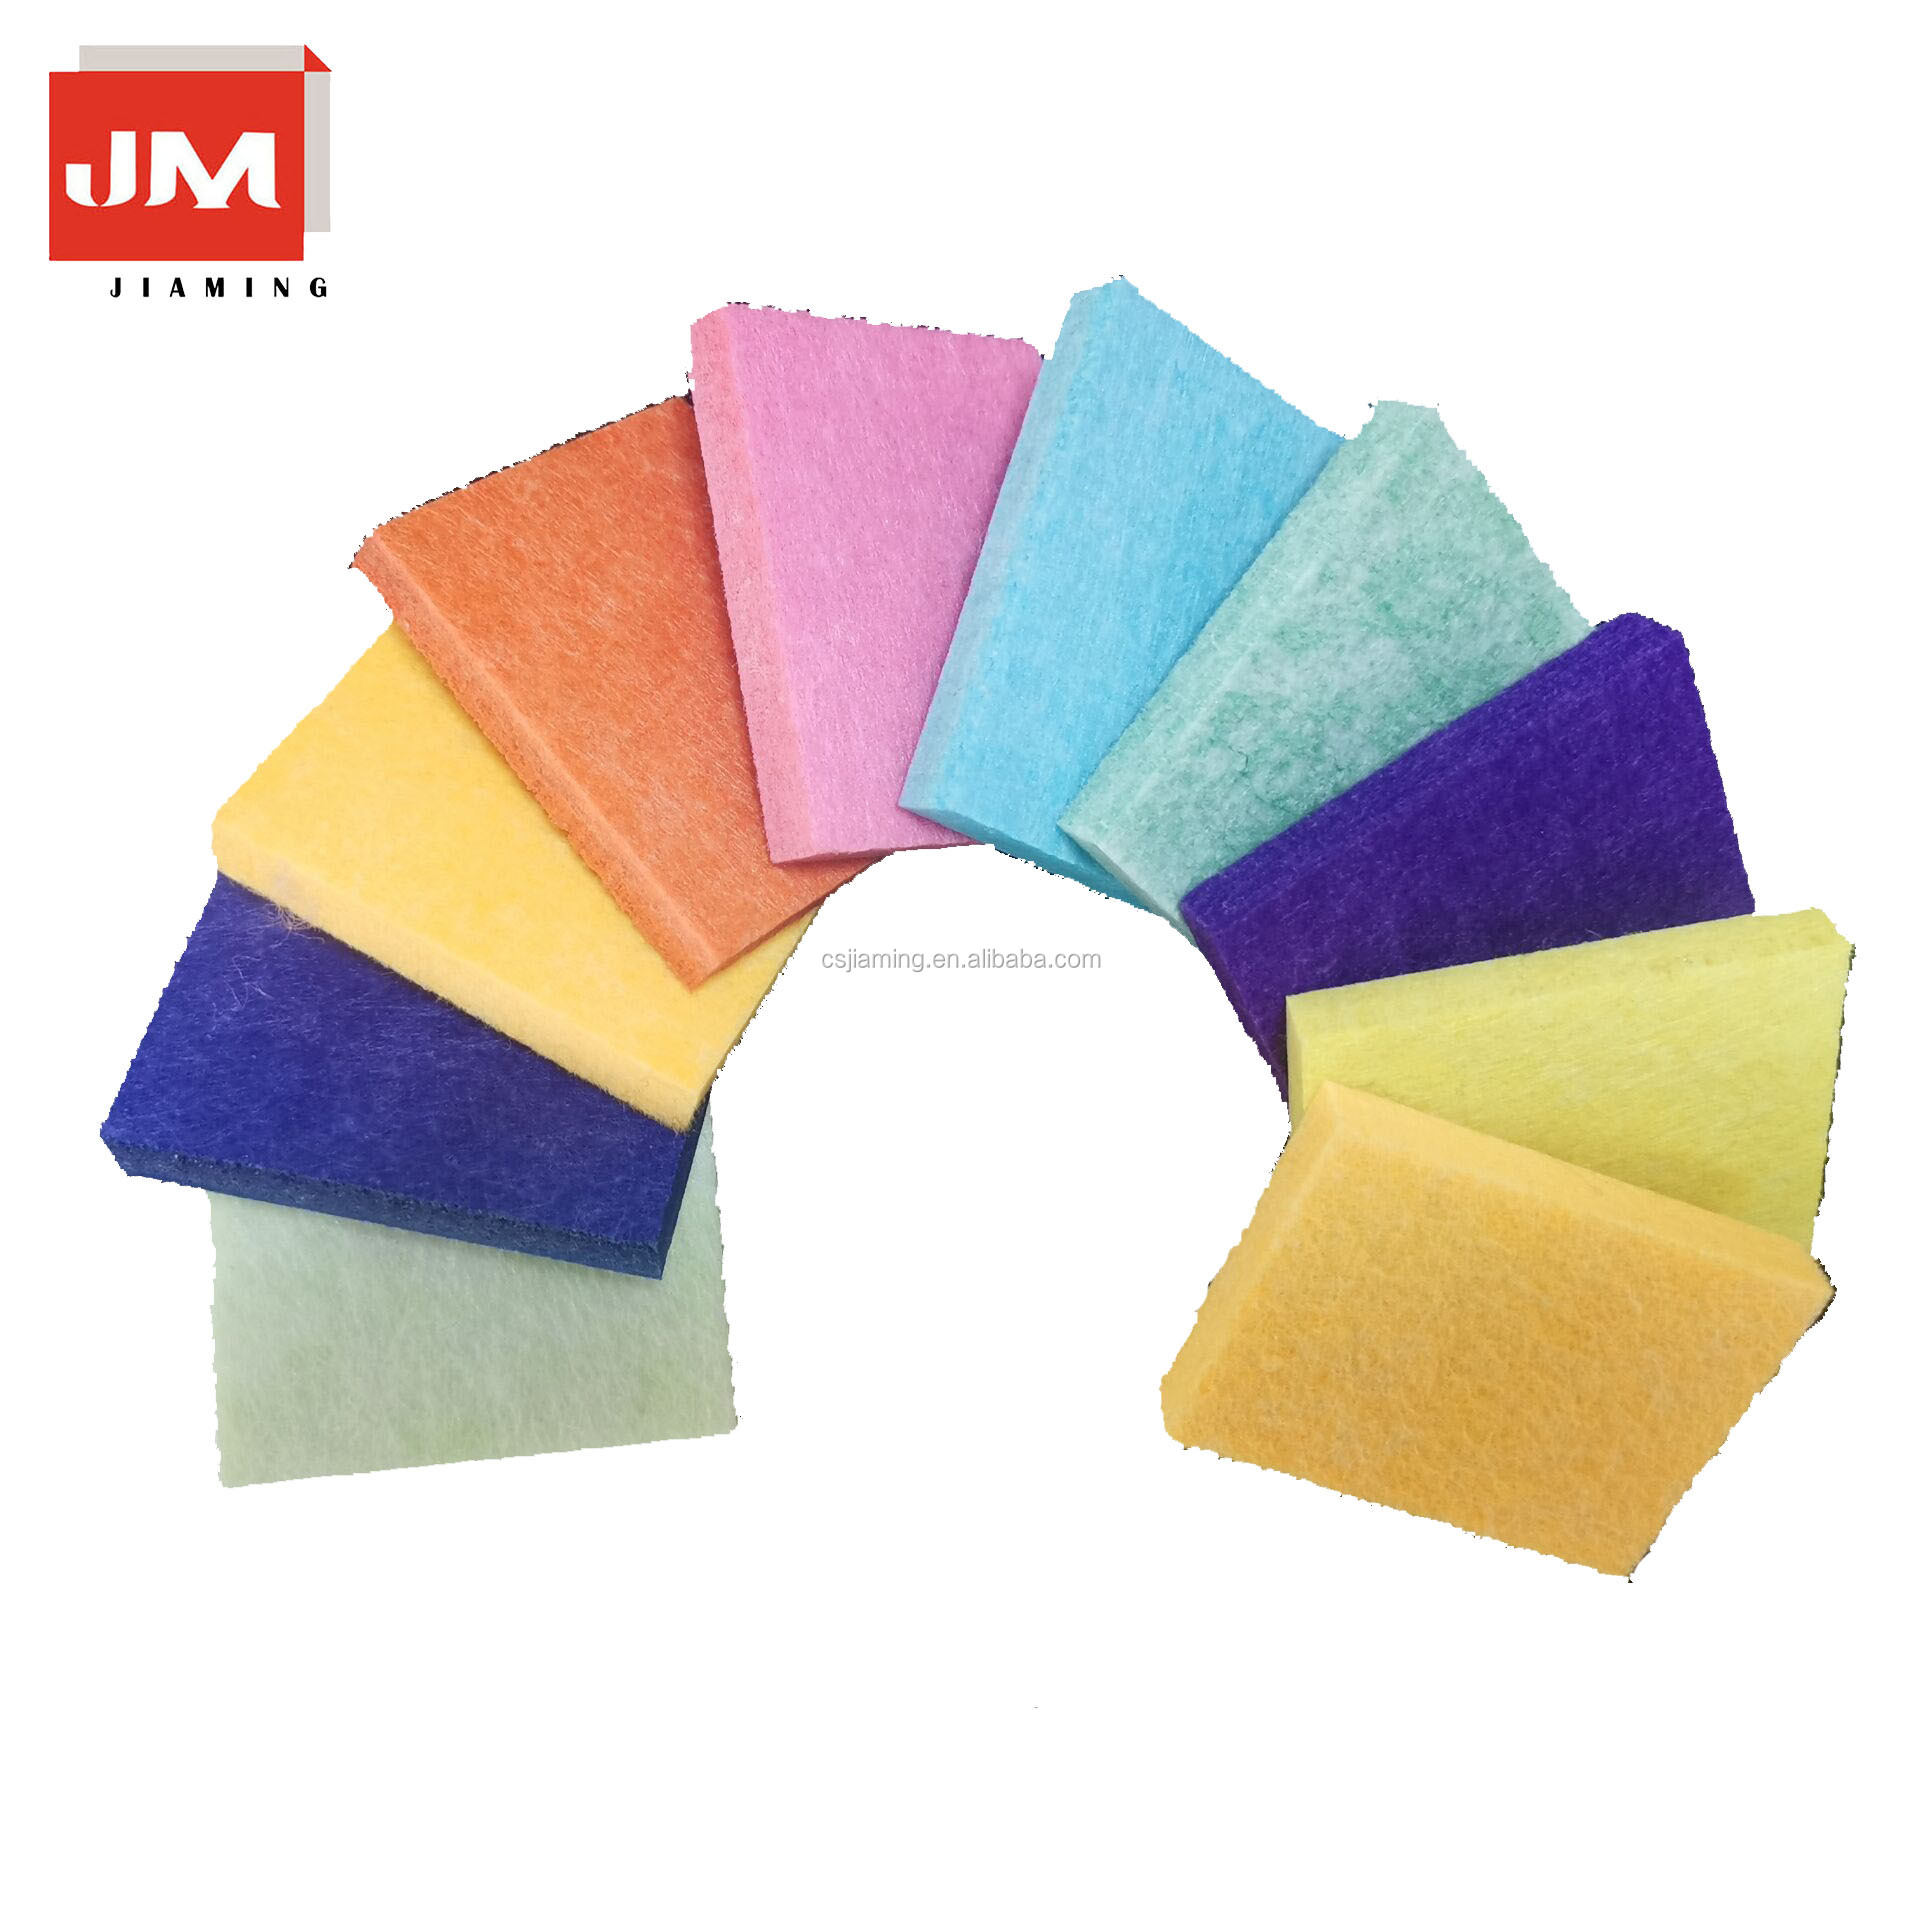 5kg 9mm 4&quot;x8&quot; Hexagon PET felt 100% polyester acoustic <strong>panel</strong> sound absorbing <strong>Panels</strong>